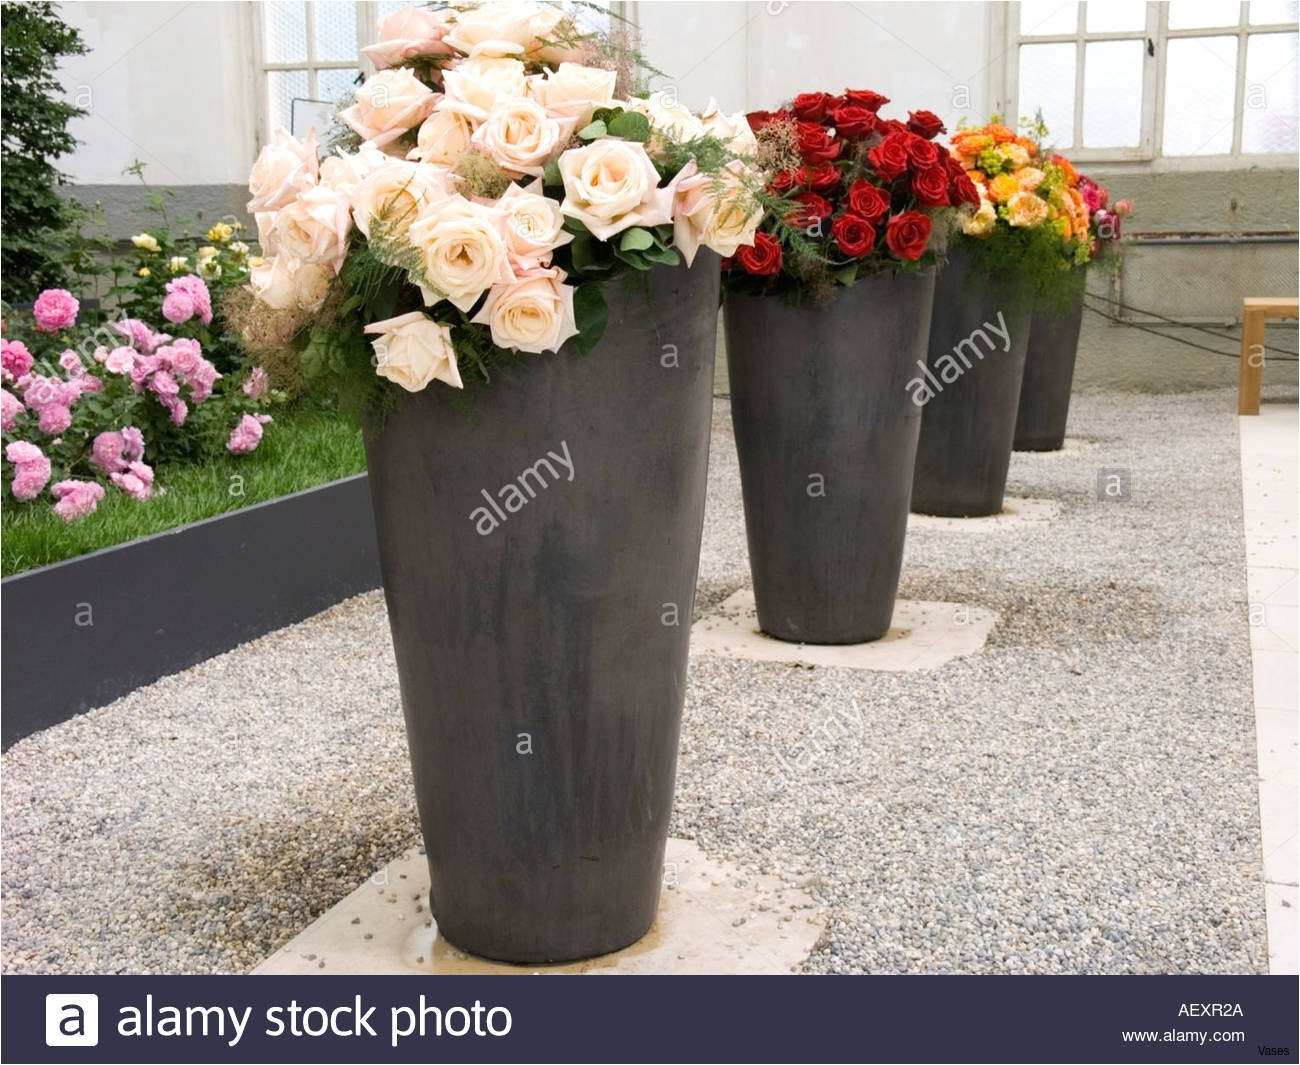 Rose Vase Ideas Of Used Wedding Decorations for Sale Party Articles with Flower Vases with Used Wedding Decorations for Sale Party Articles with Flower Vases for Sale Tag Big Vase L